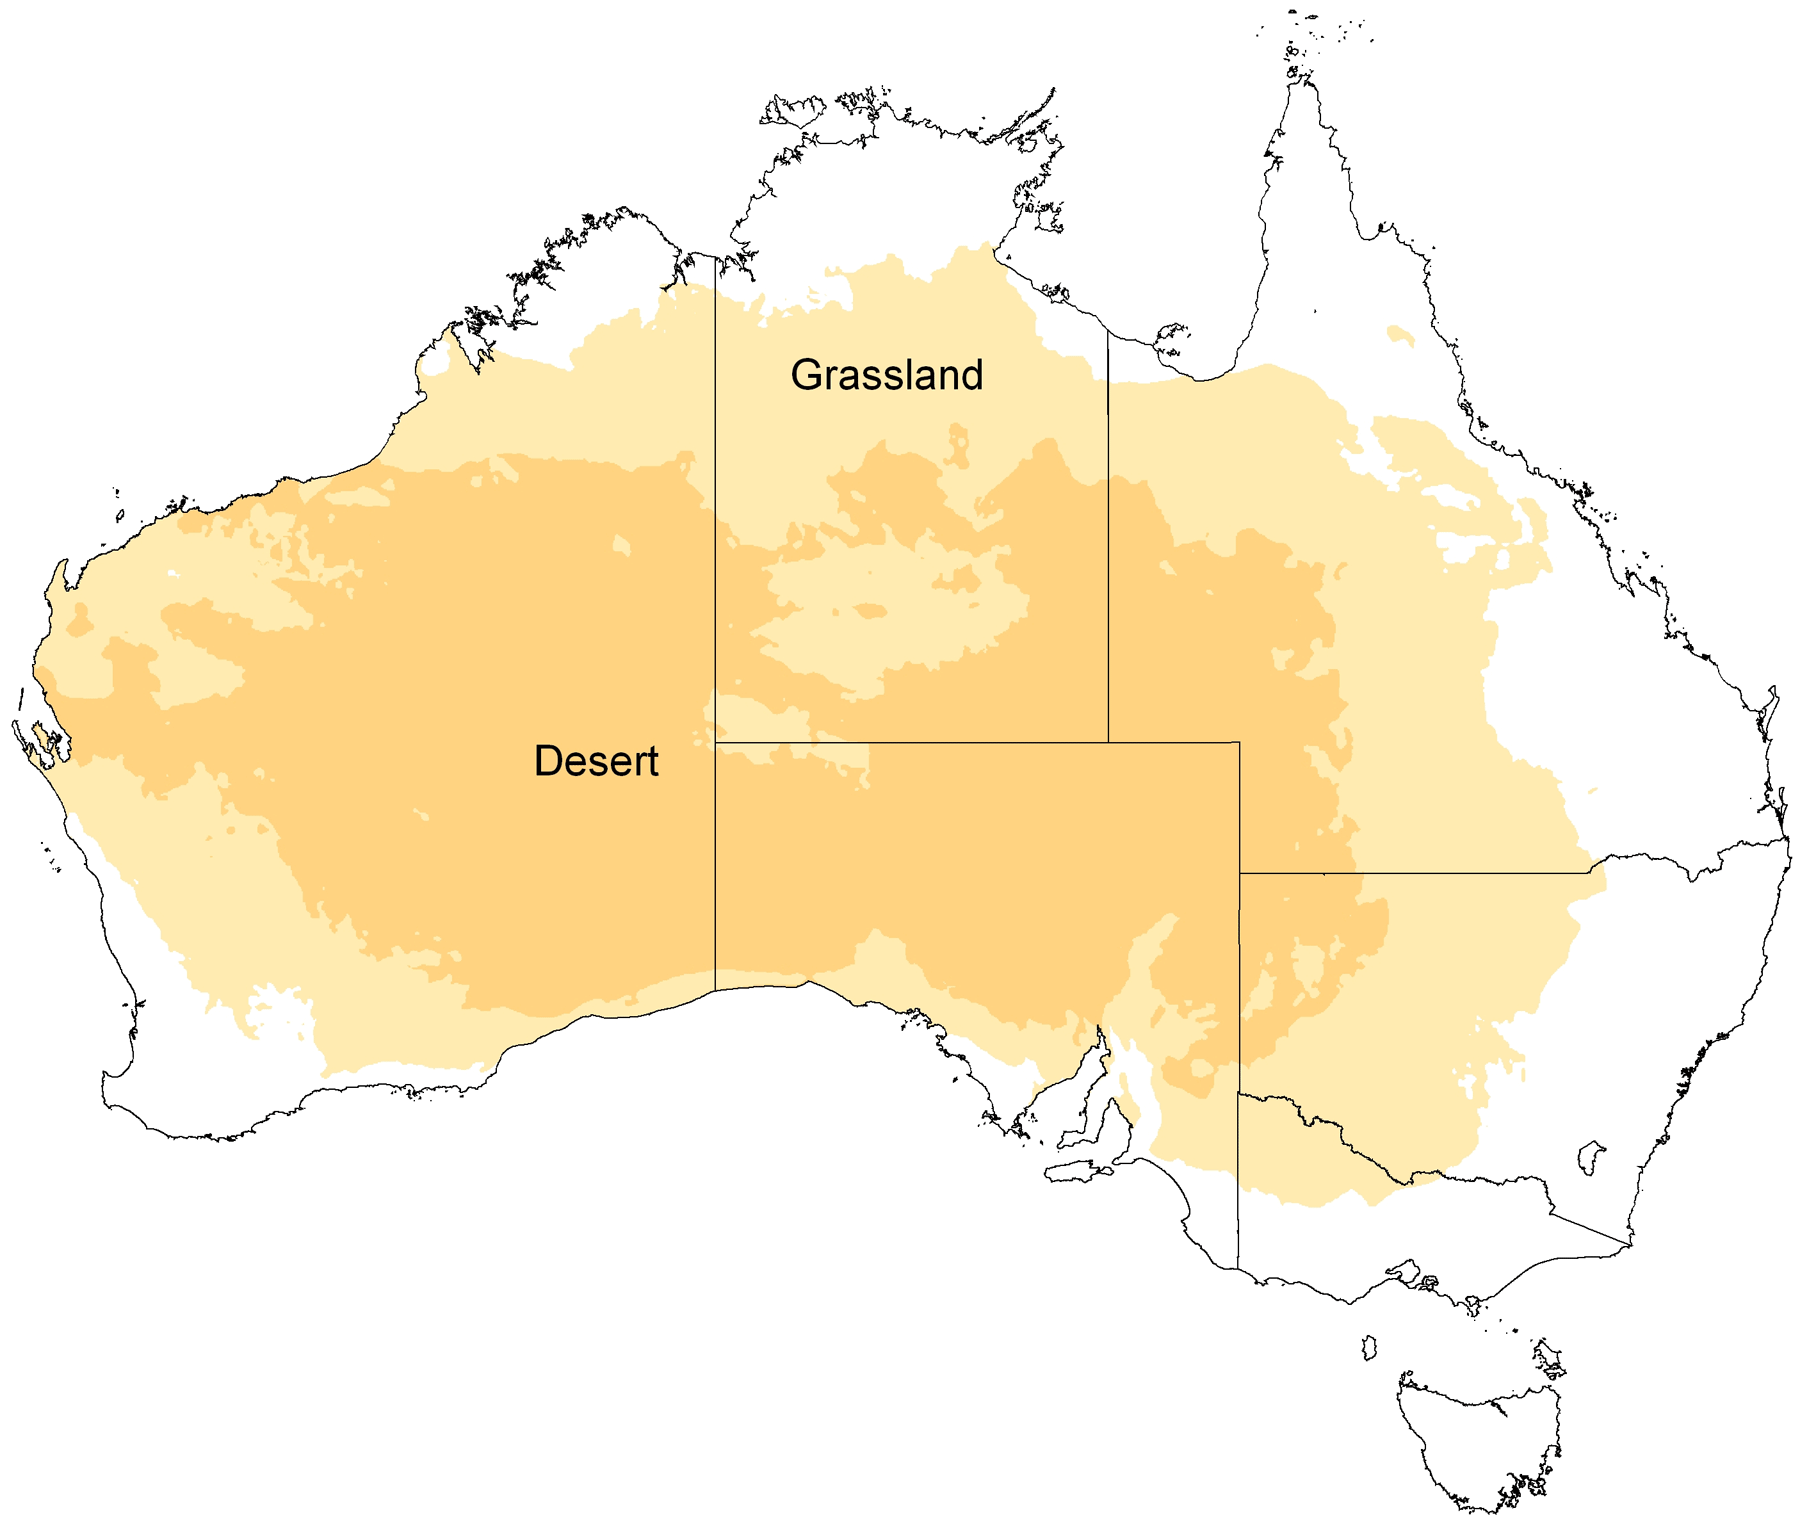 Map Of Australia Desert.Desert And Grassland Map Of Australia Mapsof Net